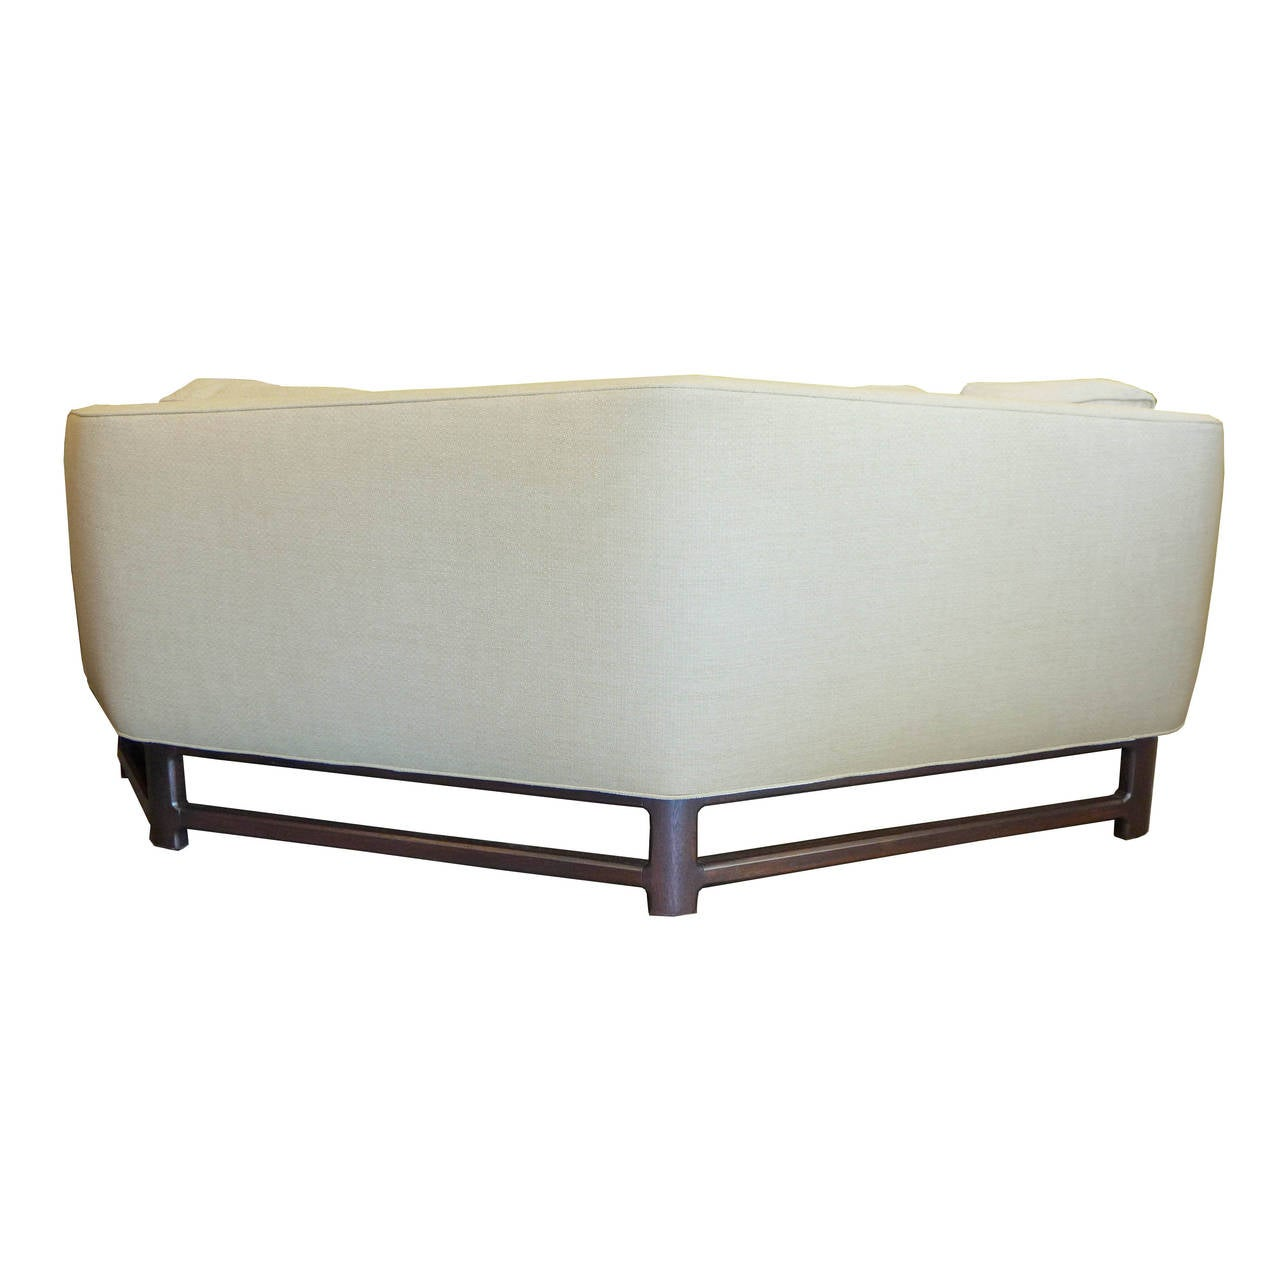 Edward Wormley Wide V Angle Sofa For Dunbar For Sale At 1stdibs